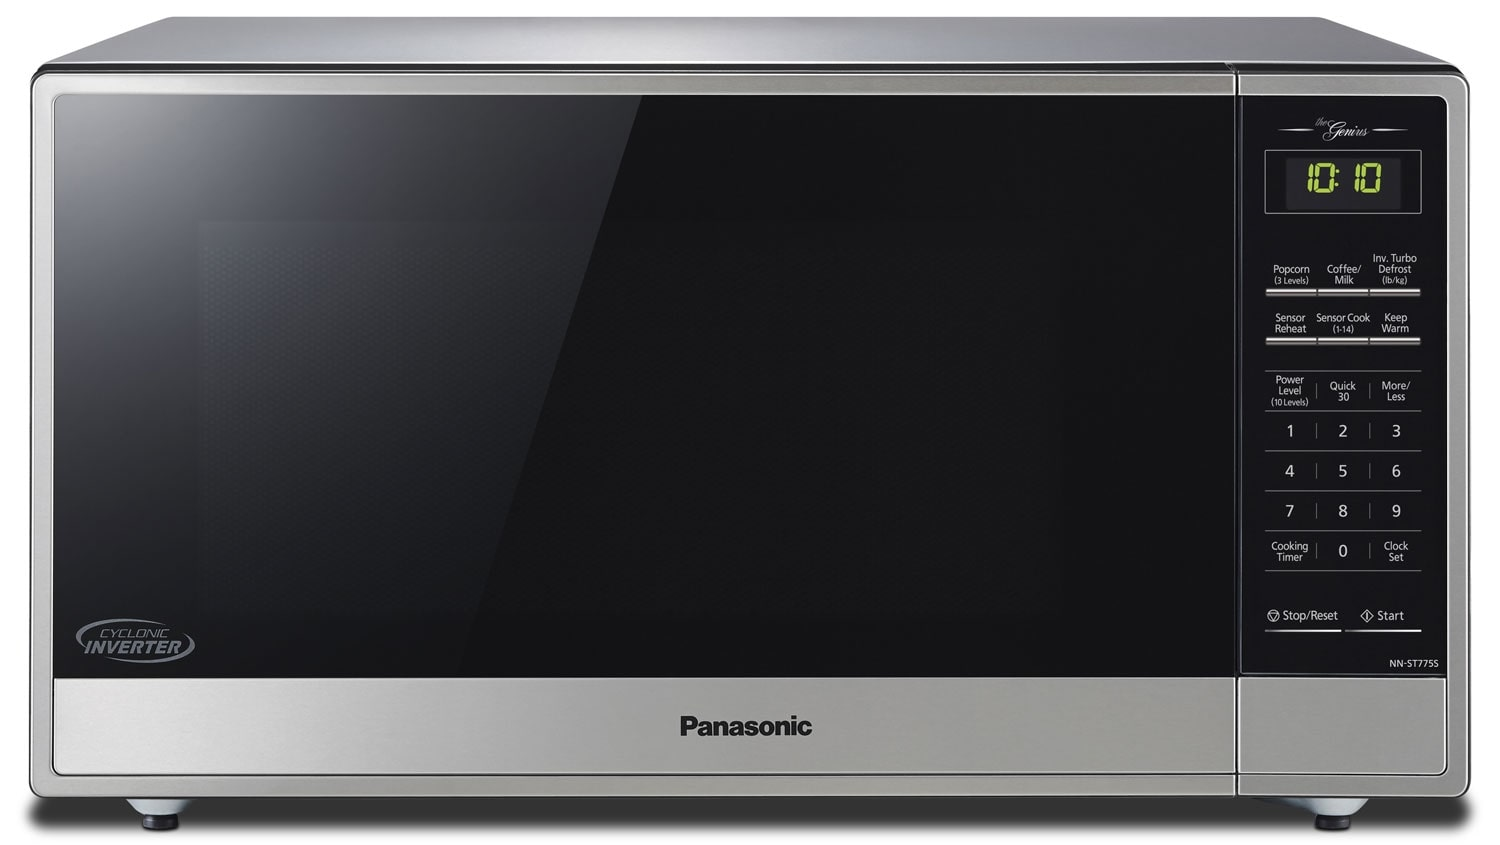 Cooking Products - Panasonic® 1.6 Cu. Ft. Countertop Microwave - Stainless Steel